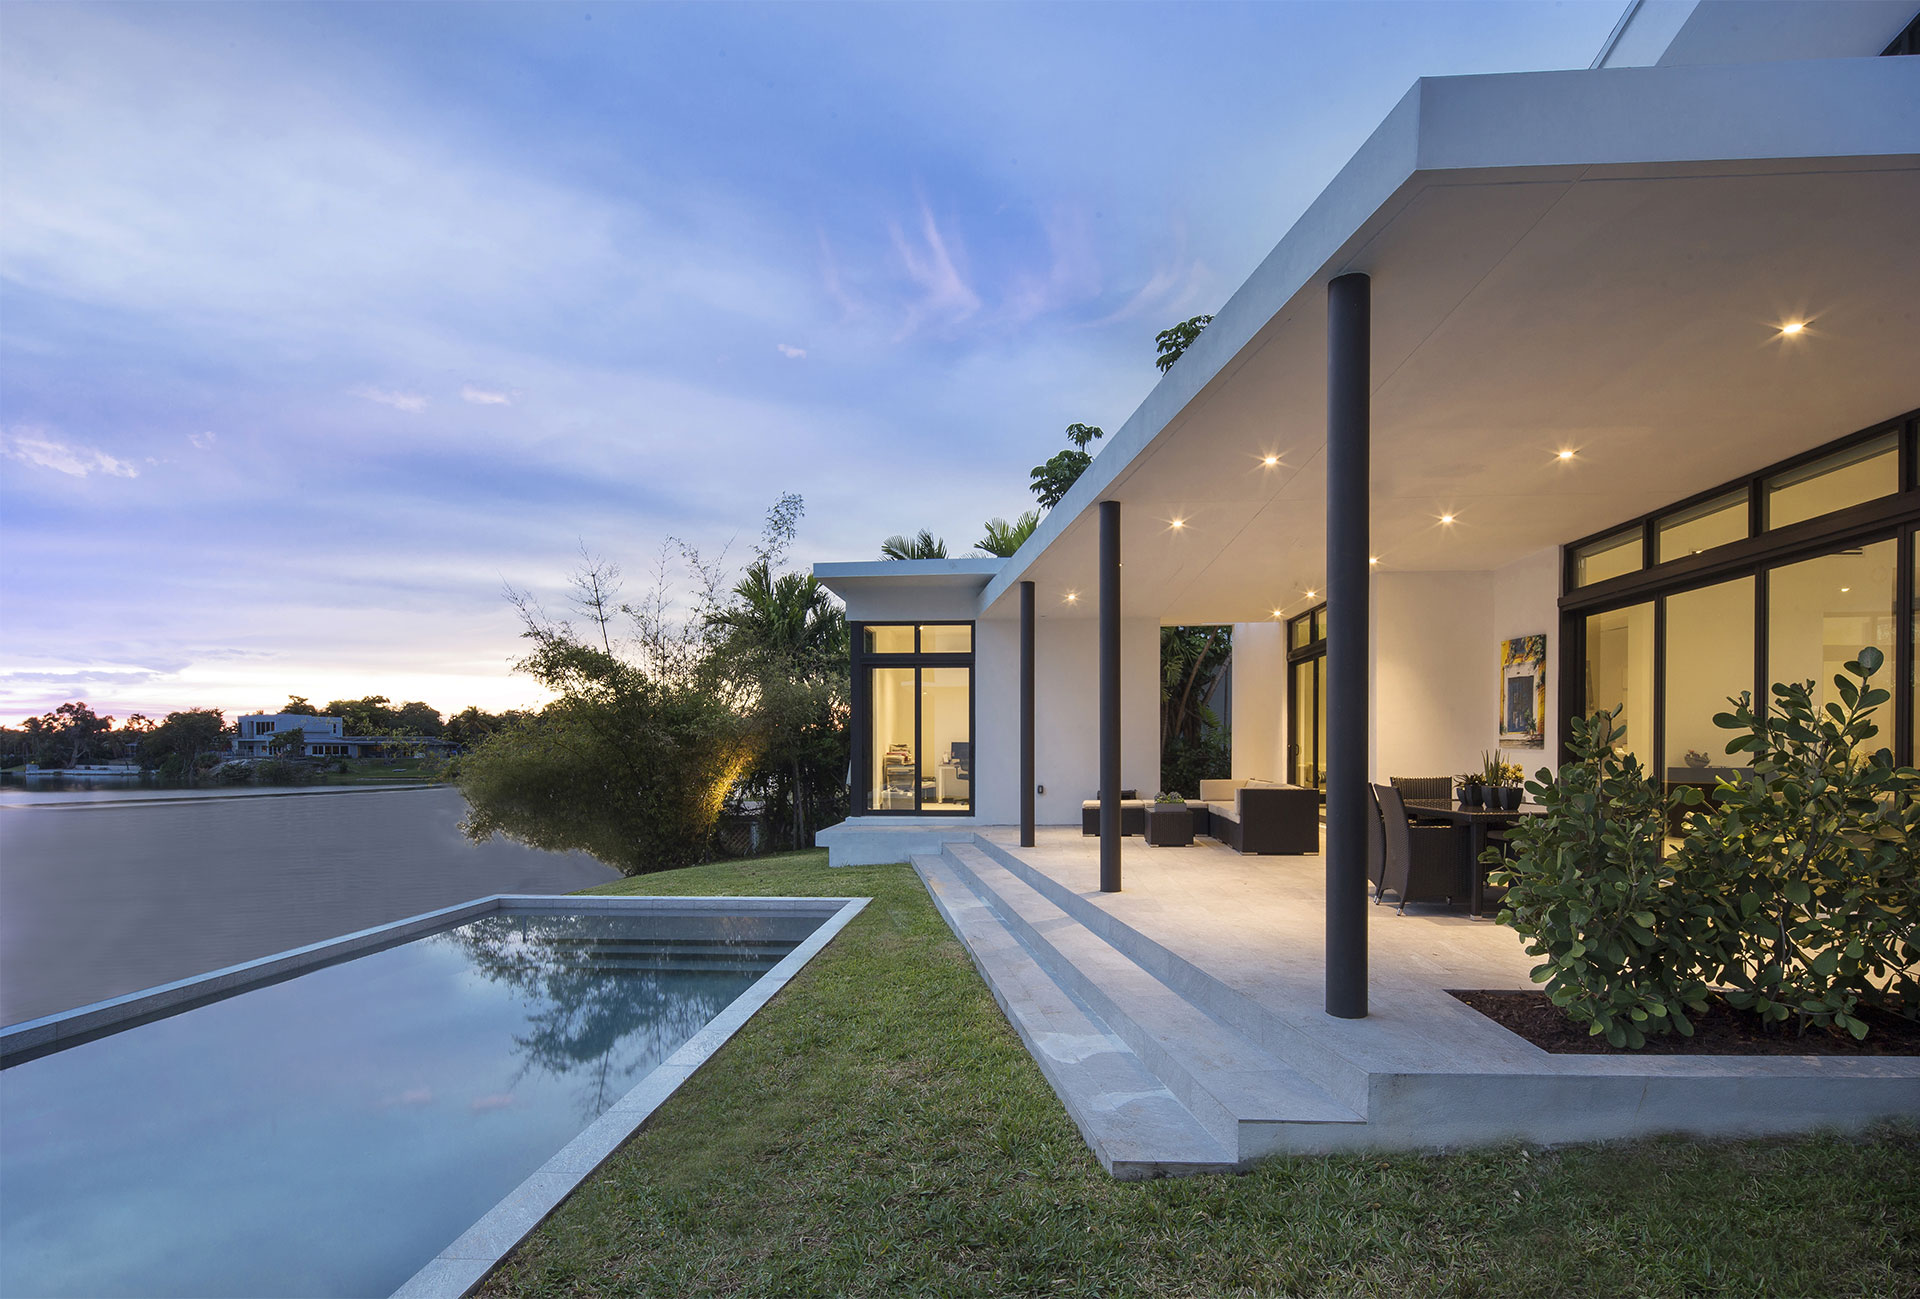 Exterior Architecture terrace side view project in Sky Lake I, Florida